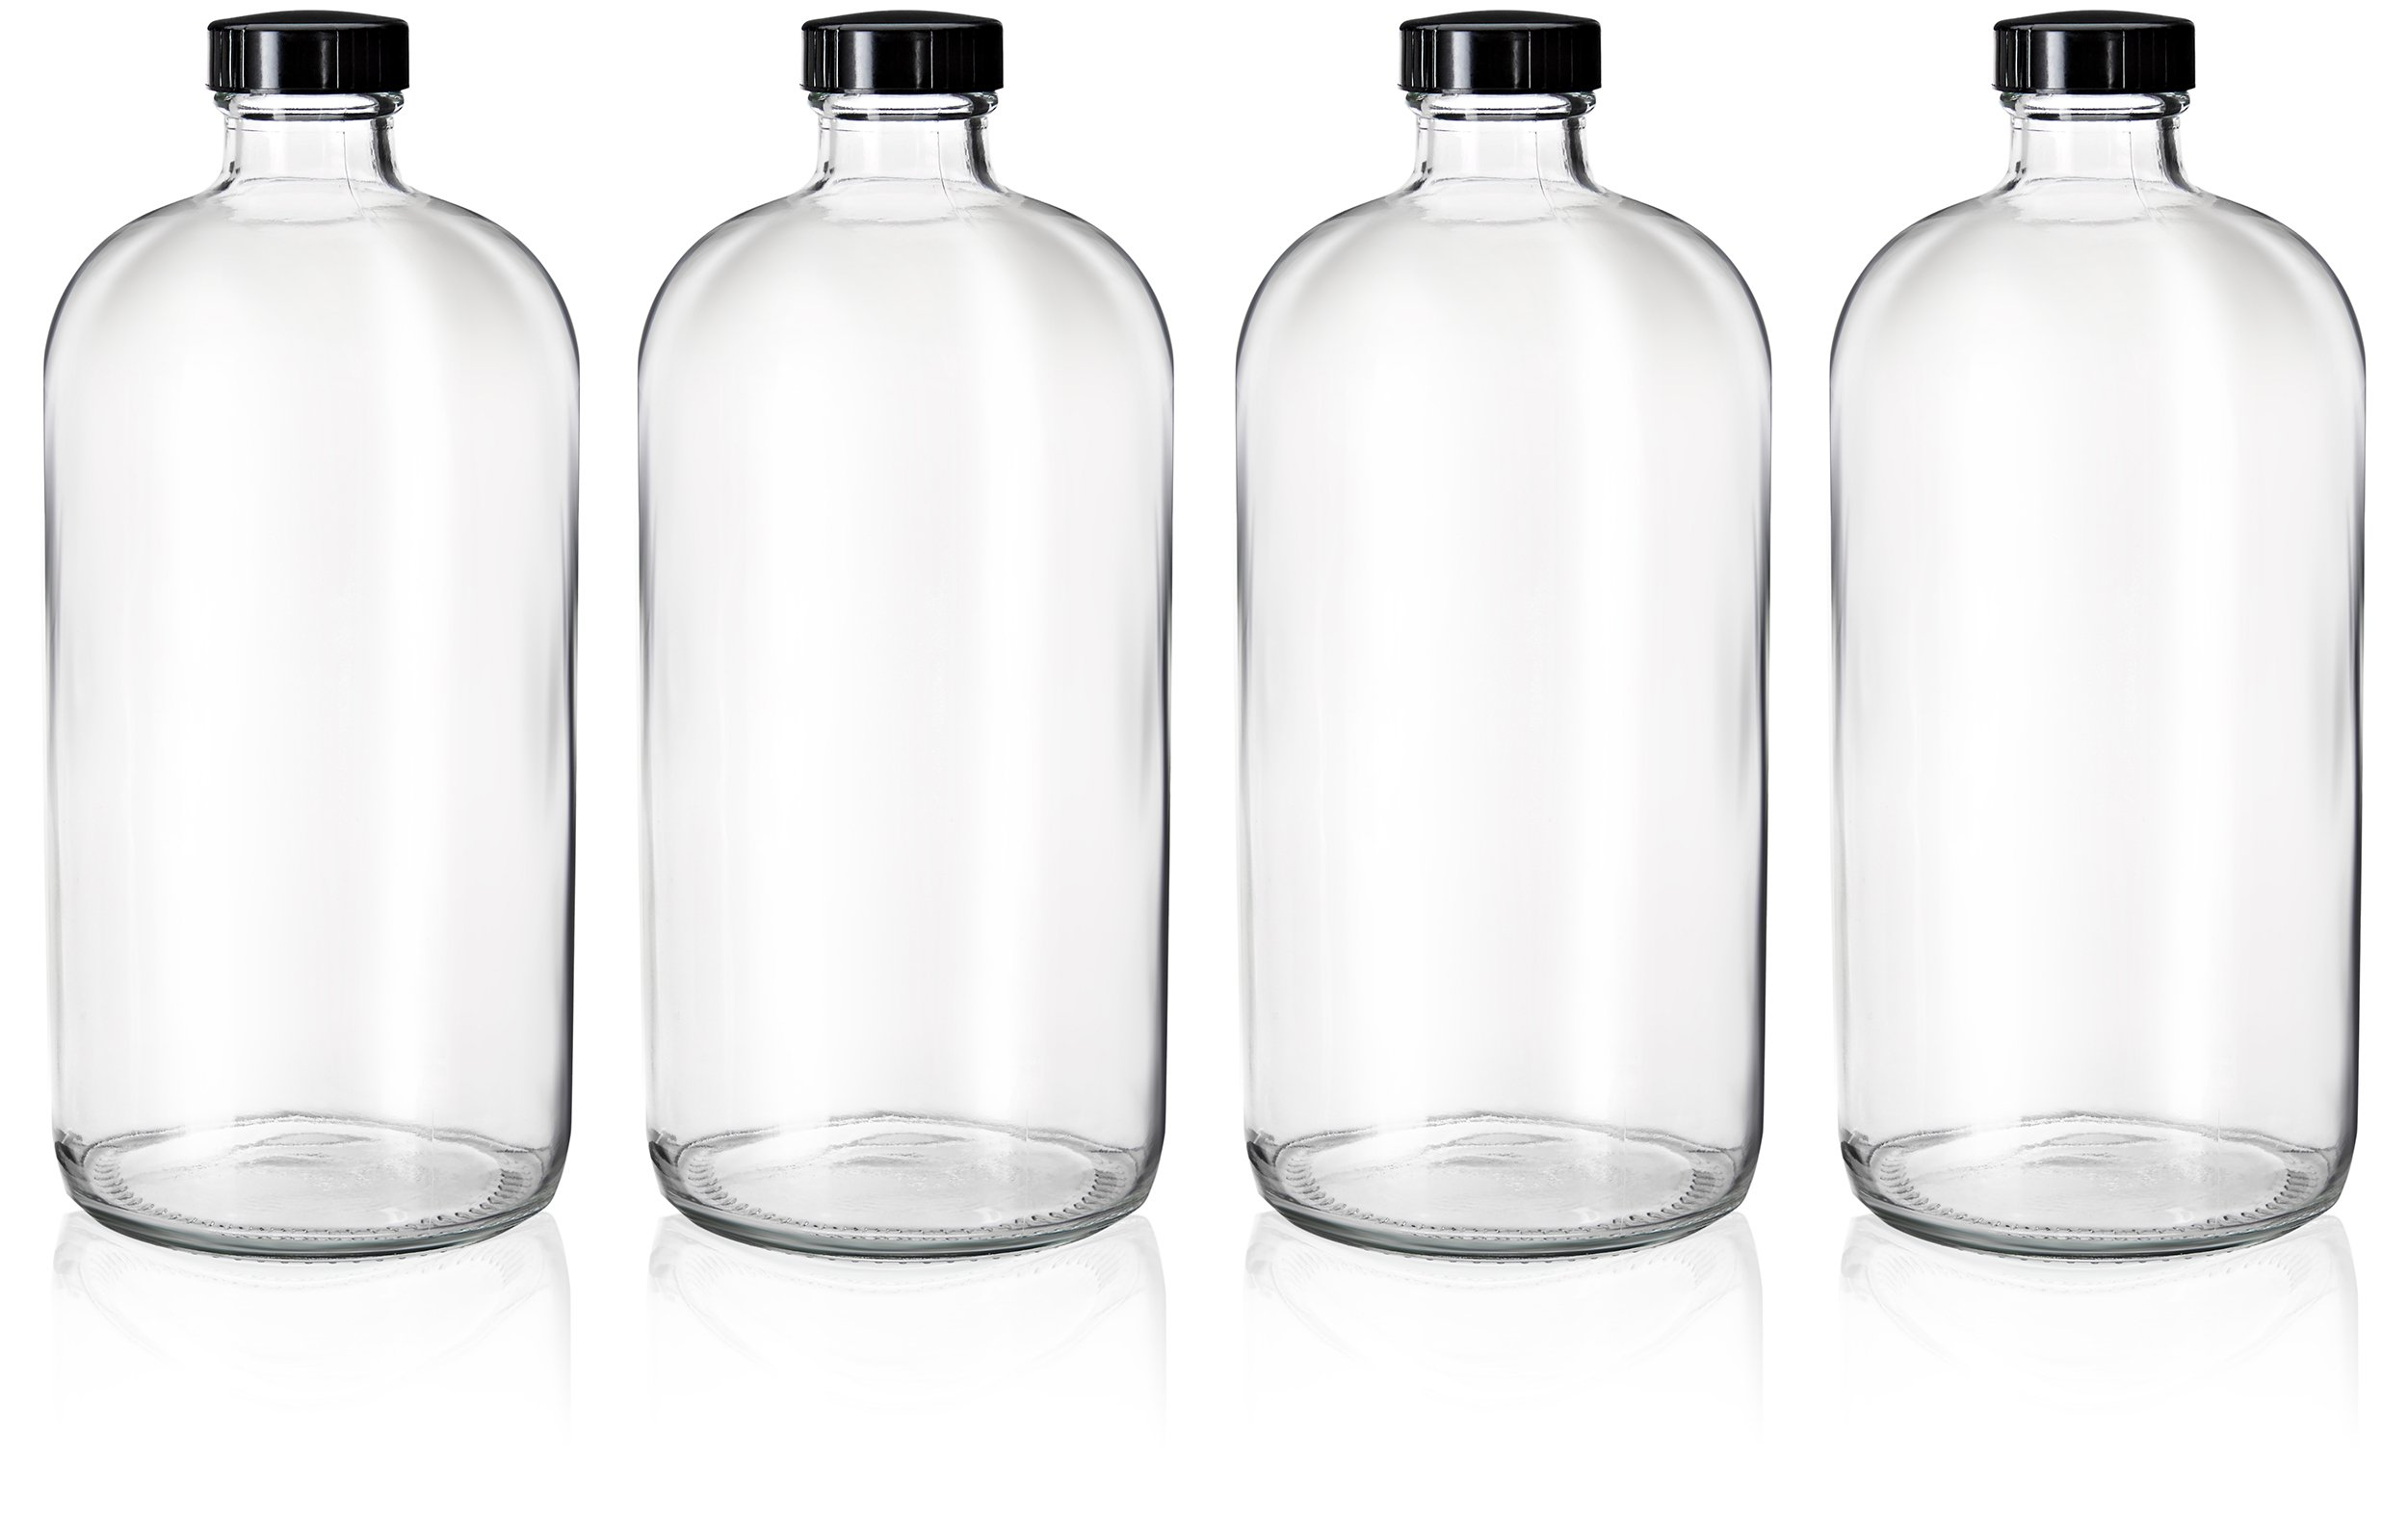 4 Pack - 32oz Boston Round Clear Glass Growler - with Phenolic Poly Cone Insert Caps - Tight Seal for Secondary Kombucha Fermentation